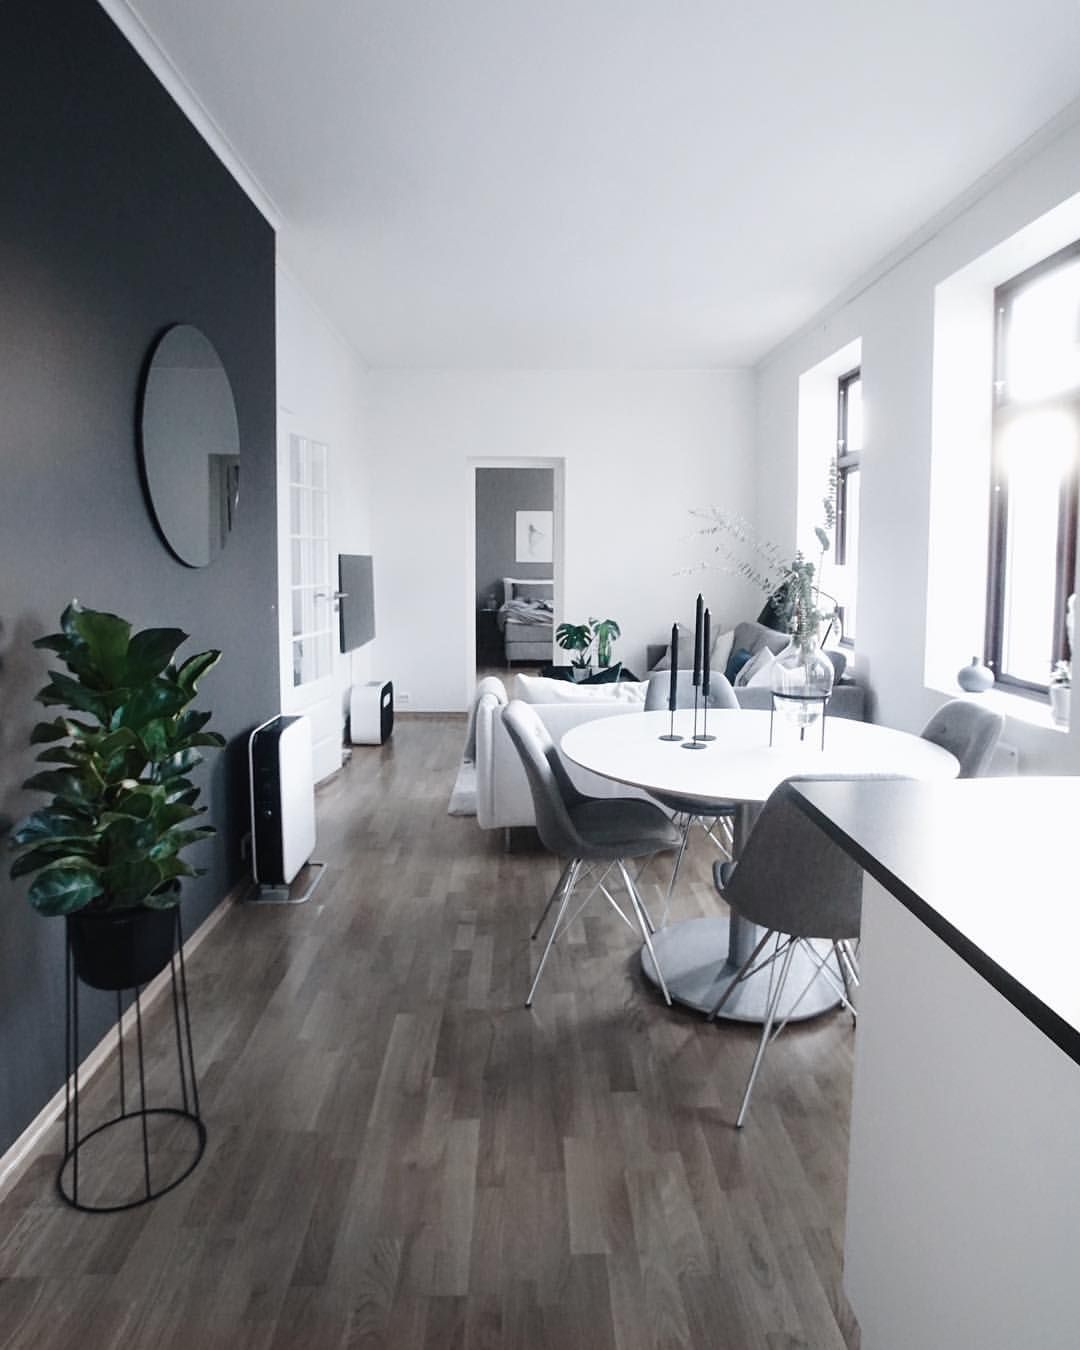 D coration salon pur e mur noir parquet bois gris for Salon sejour gris